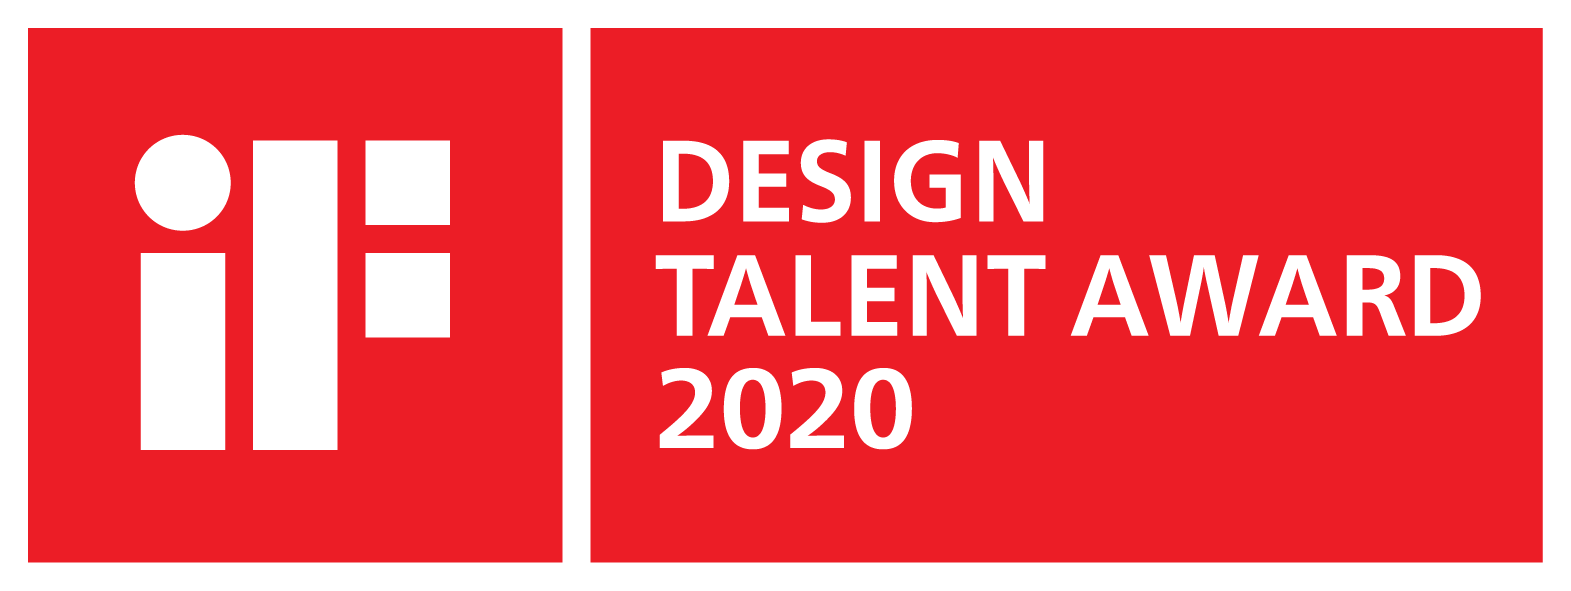 iF DESIGN TALENT AWARD_01 2020